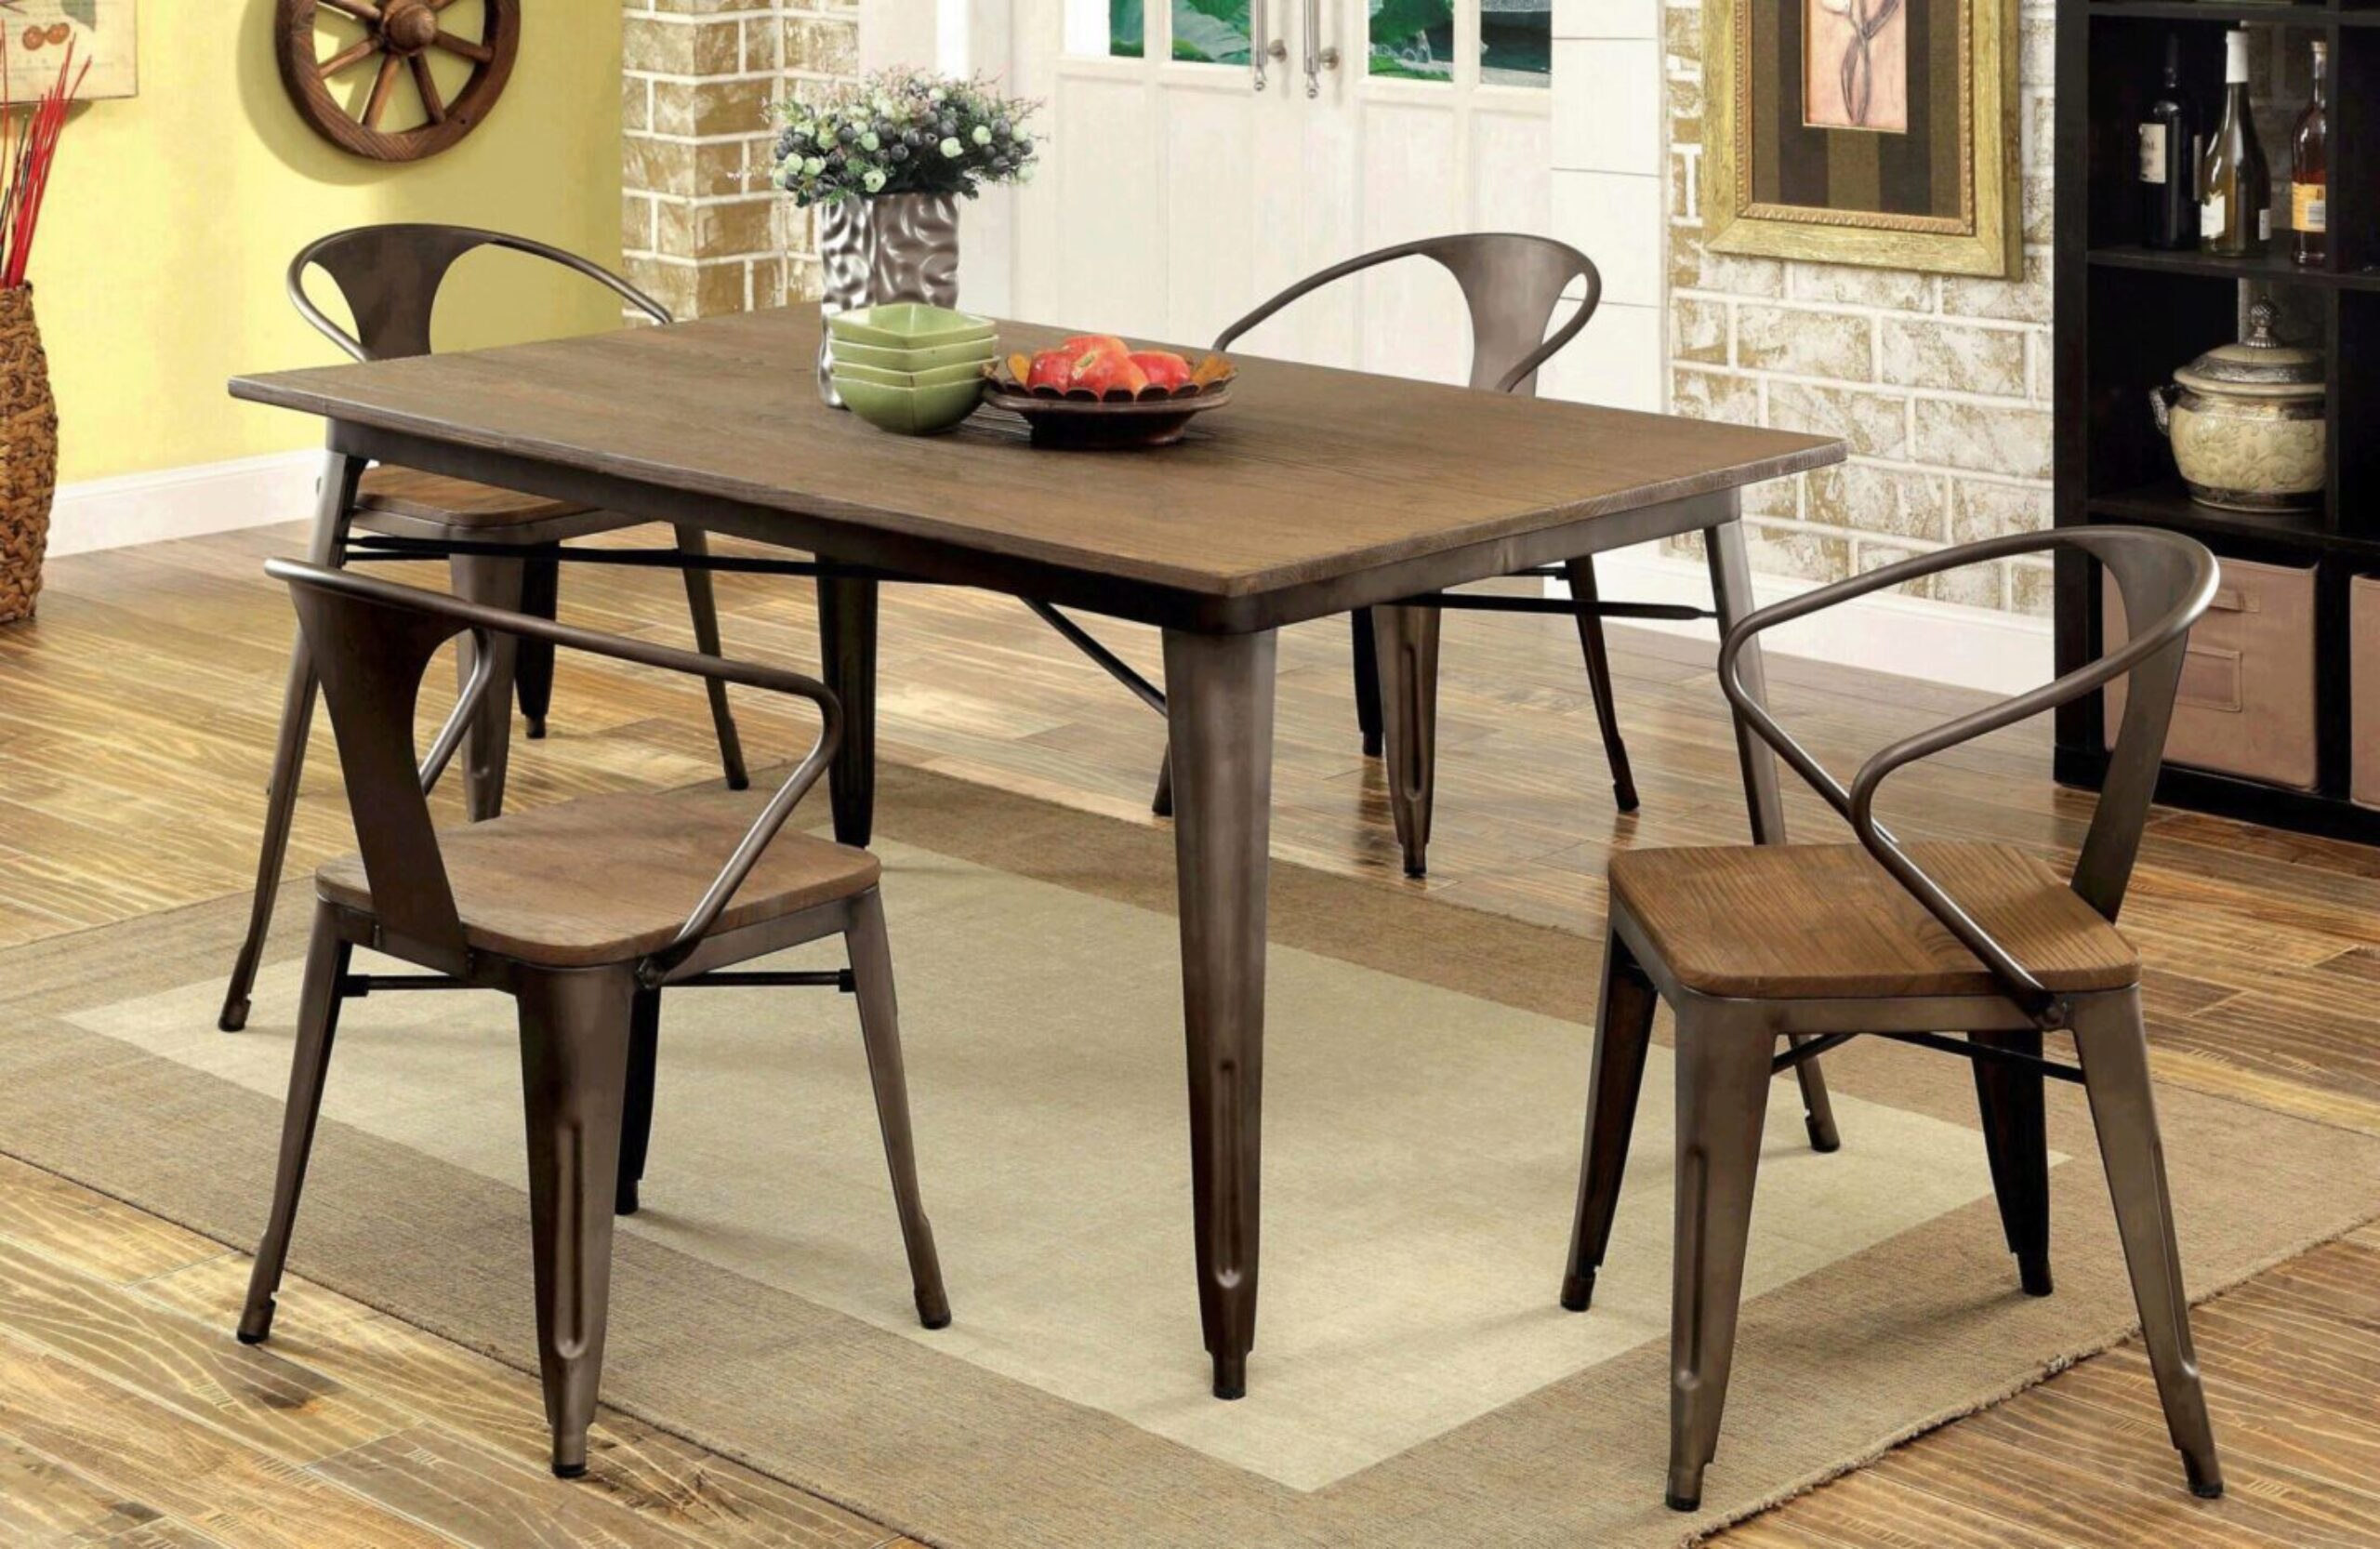 Metal Natural Elm Dining Set, Industrial Style Dining Room Table